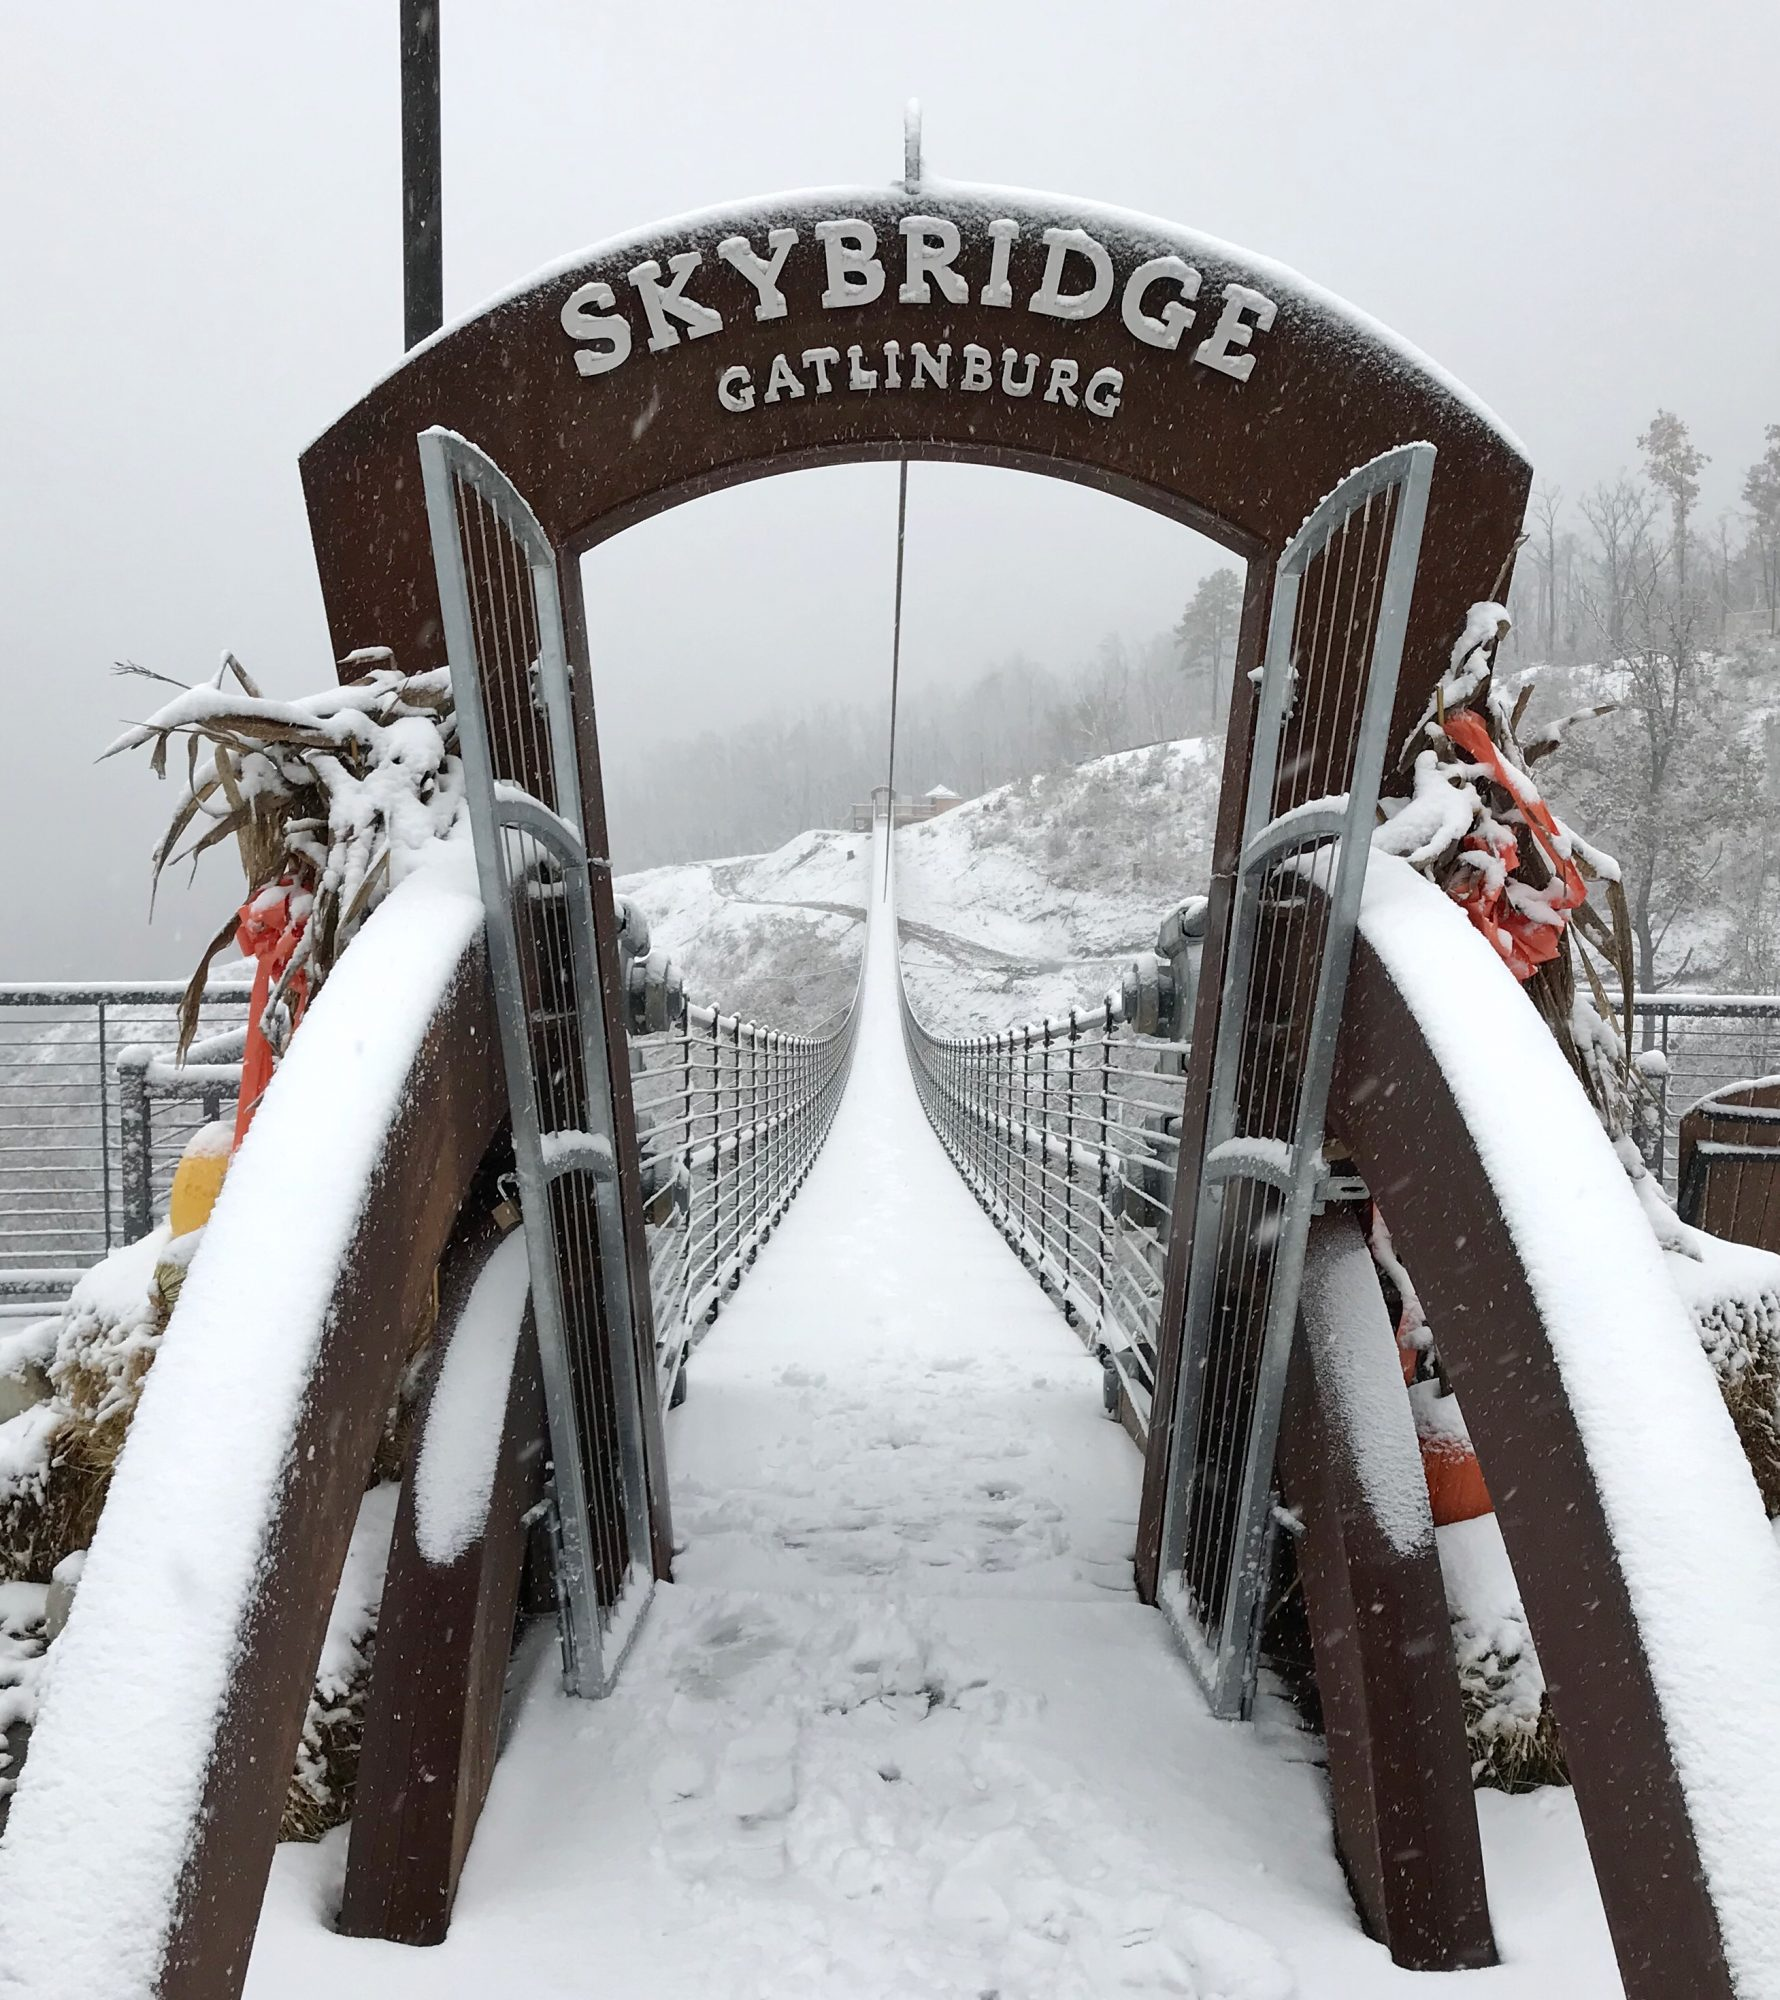 Gatlinburg Skybridge 2